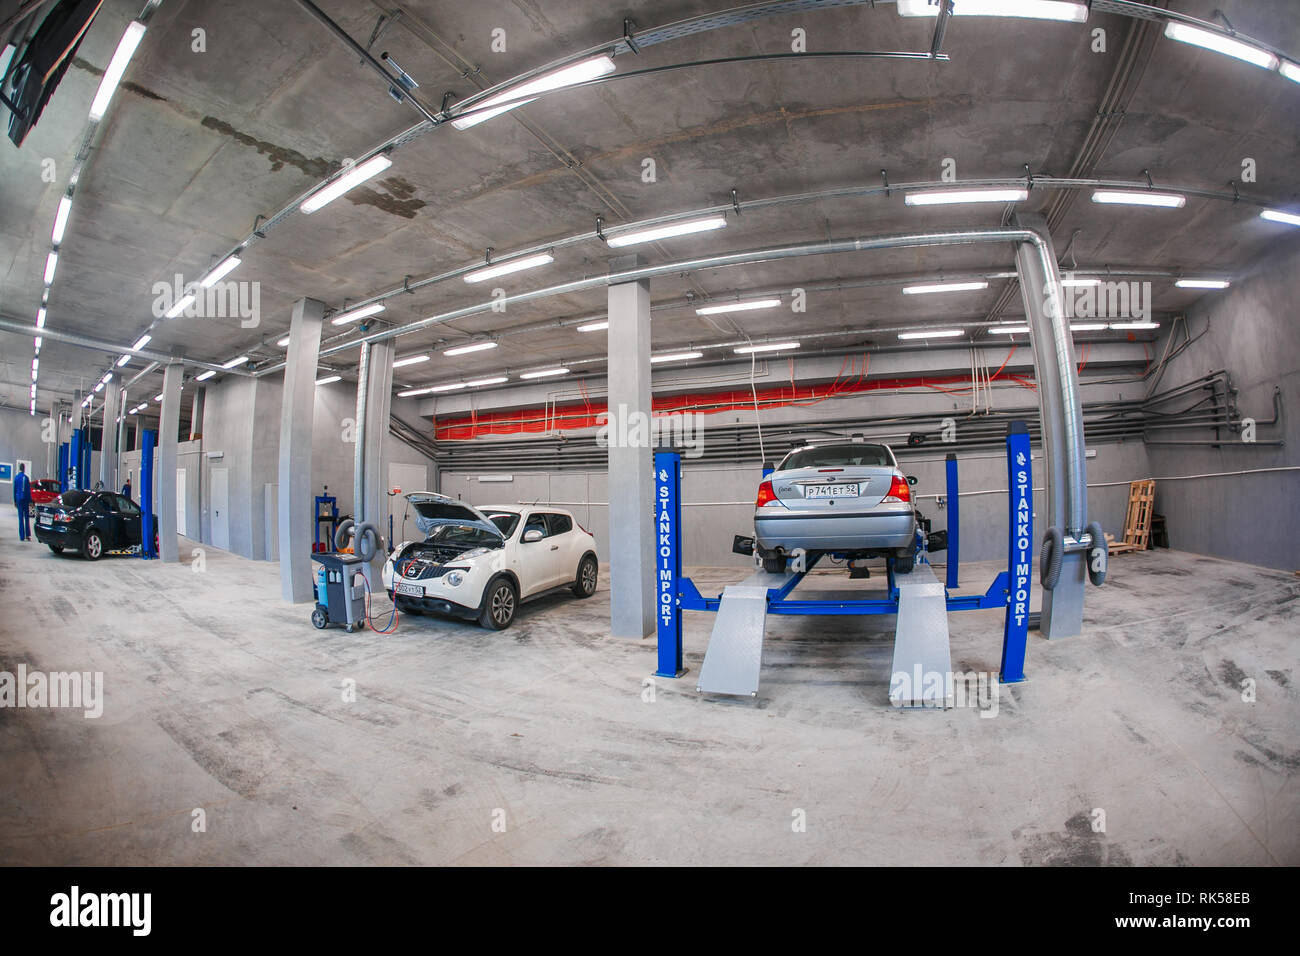 Russia Nizhny Novgorod August 17 2015 Car Service Station Interior Of A Vehicle Repair Station Hydraulic Power Lift Stock Photo Alamy